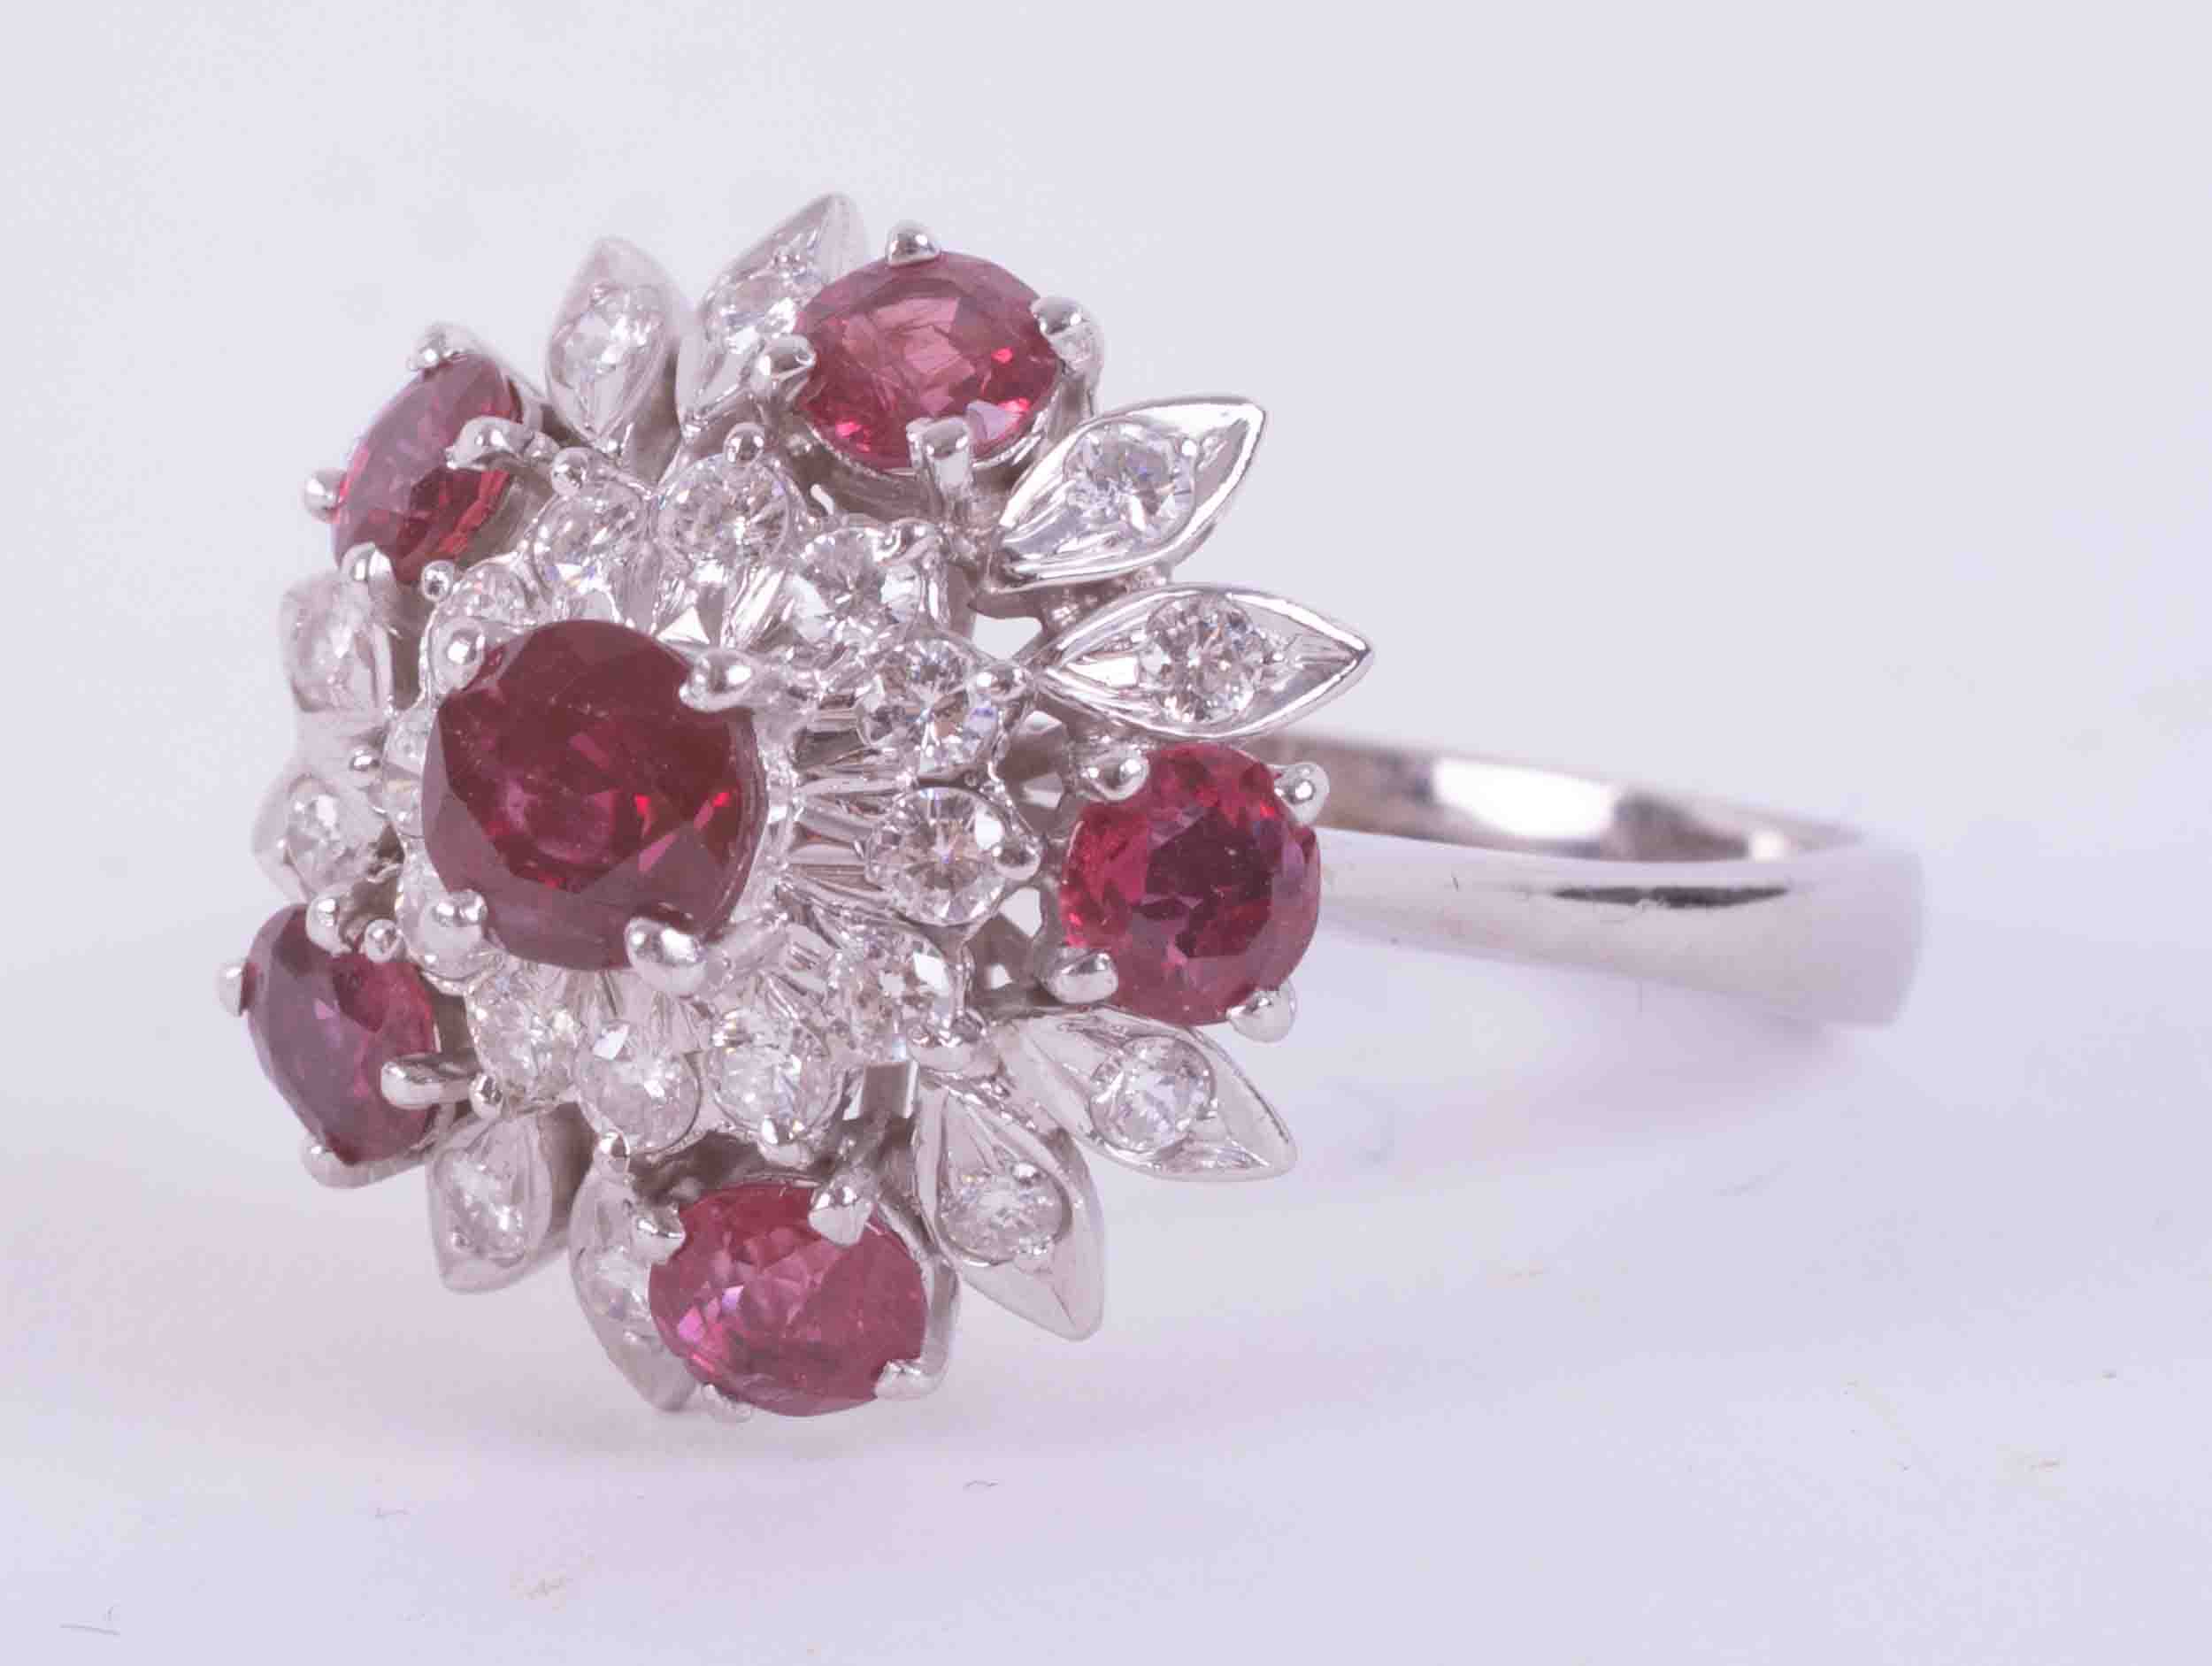 A 14ct white gold flower design cluster ring set with approx. 1.75 carats of round cut rubies